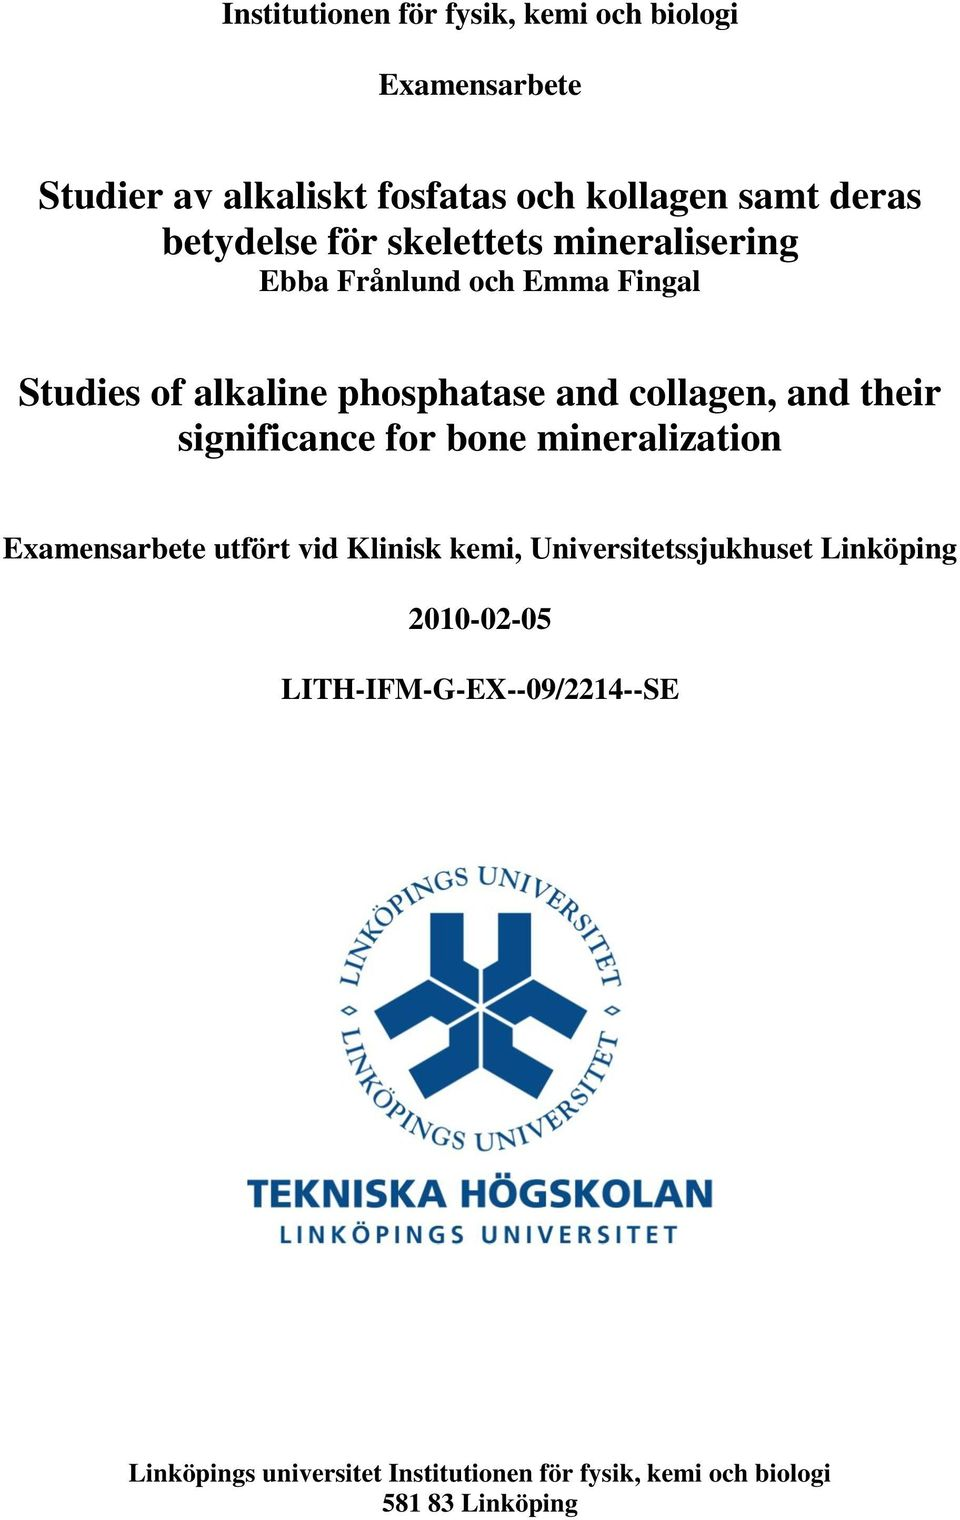 and their significance for bone mineralization Examensarbete utfört vid Klinisk kemi, Universitetssjukhuset